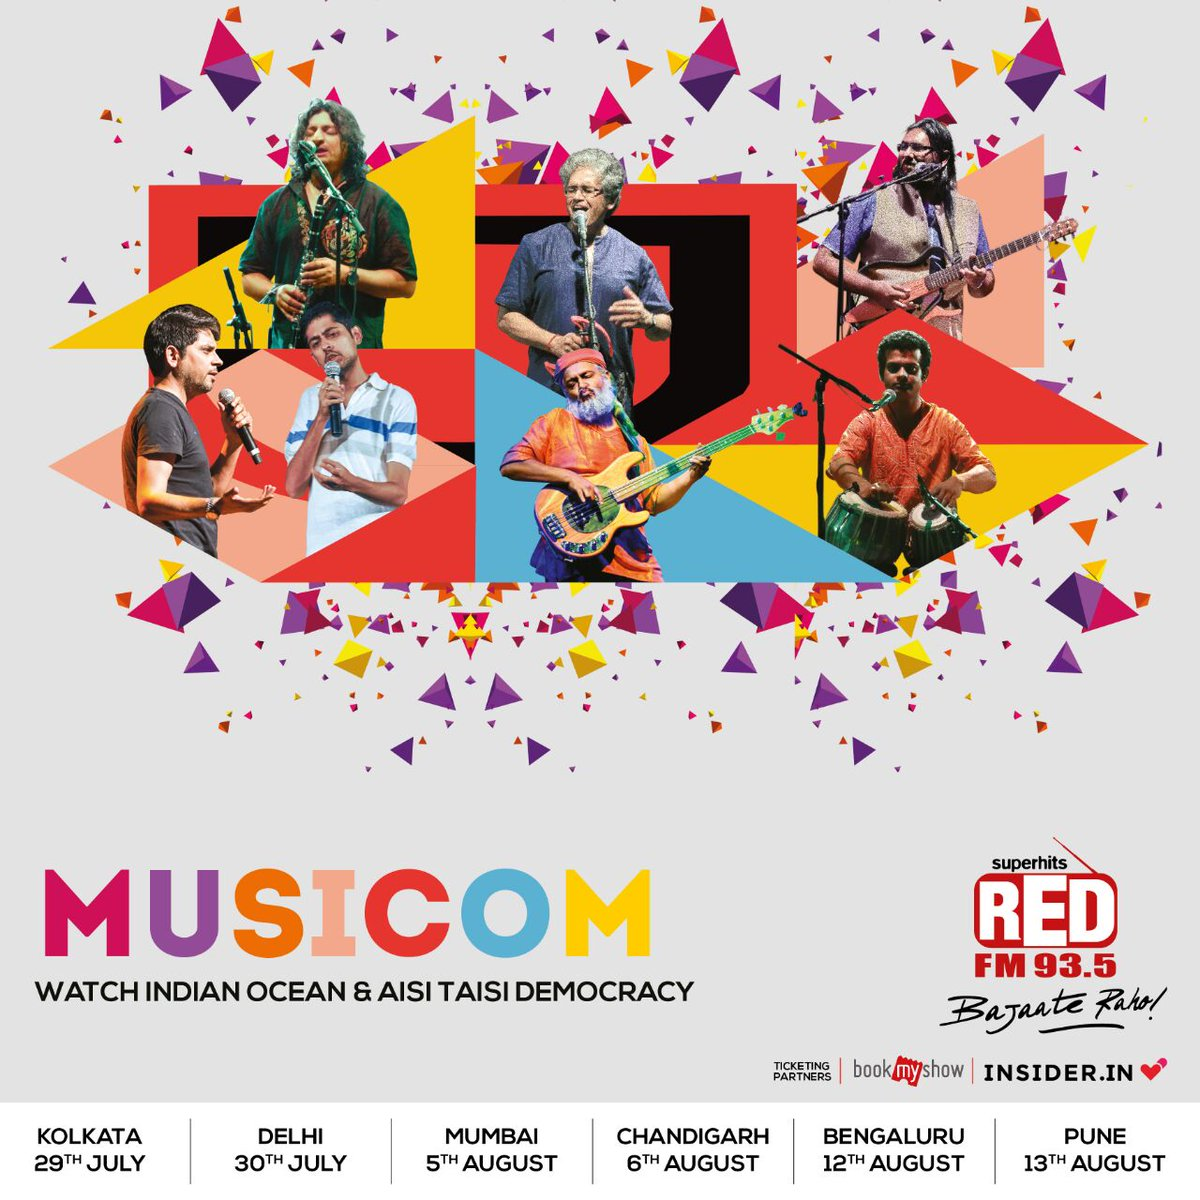 Kickstarting @RedFMIndia  #musicom tonight at Kolkata nazrul manch 6 pm onwards, with @AisiTaisiDemo  see you tonight!pic.twitter.com/nDBxj8mLZG